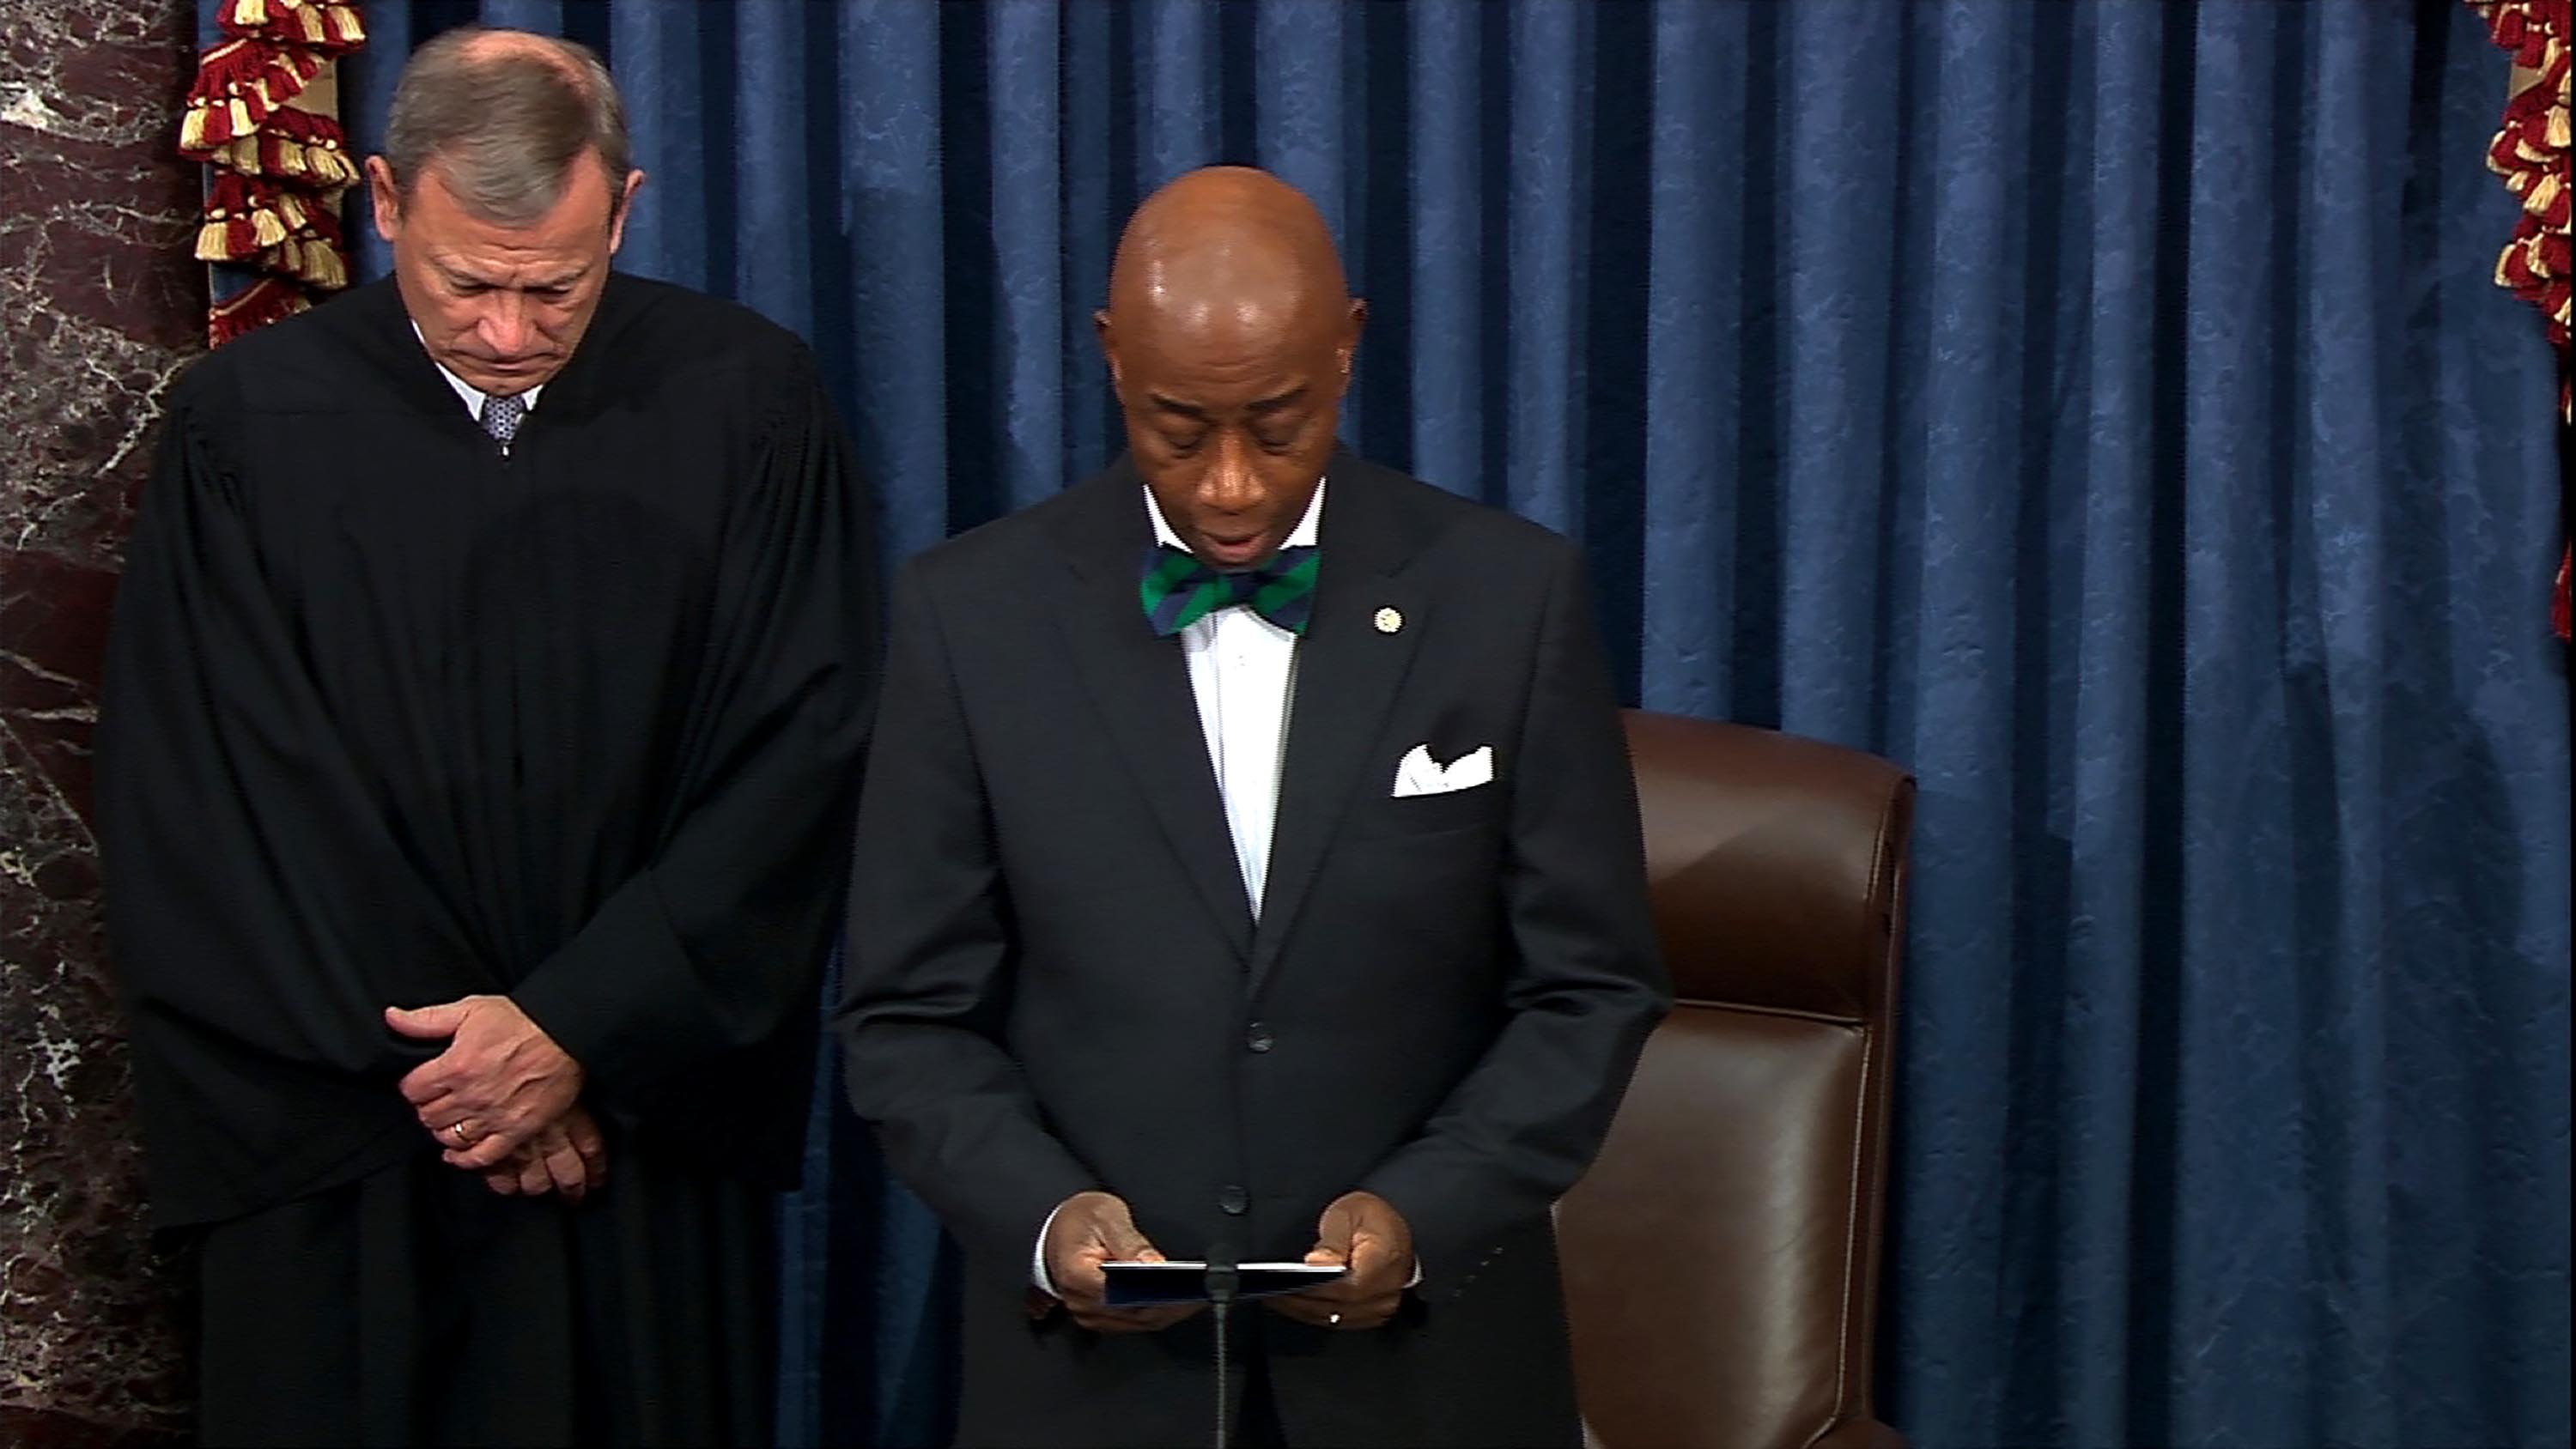 Senate chaplain opens second day of impeachment trial with pointed prayer: 'Patriots reside on both sides of the aisle'